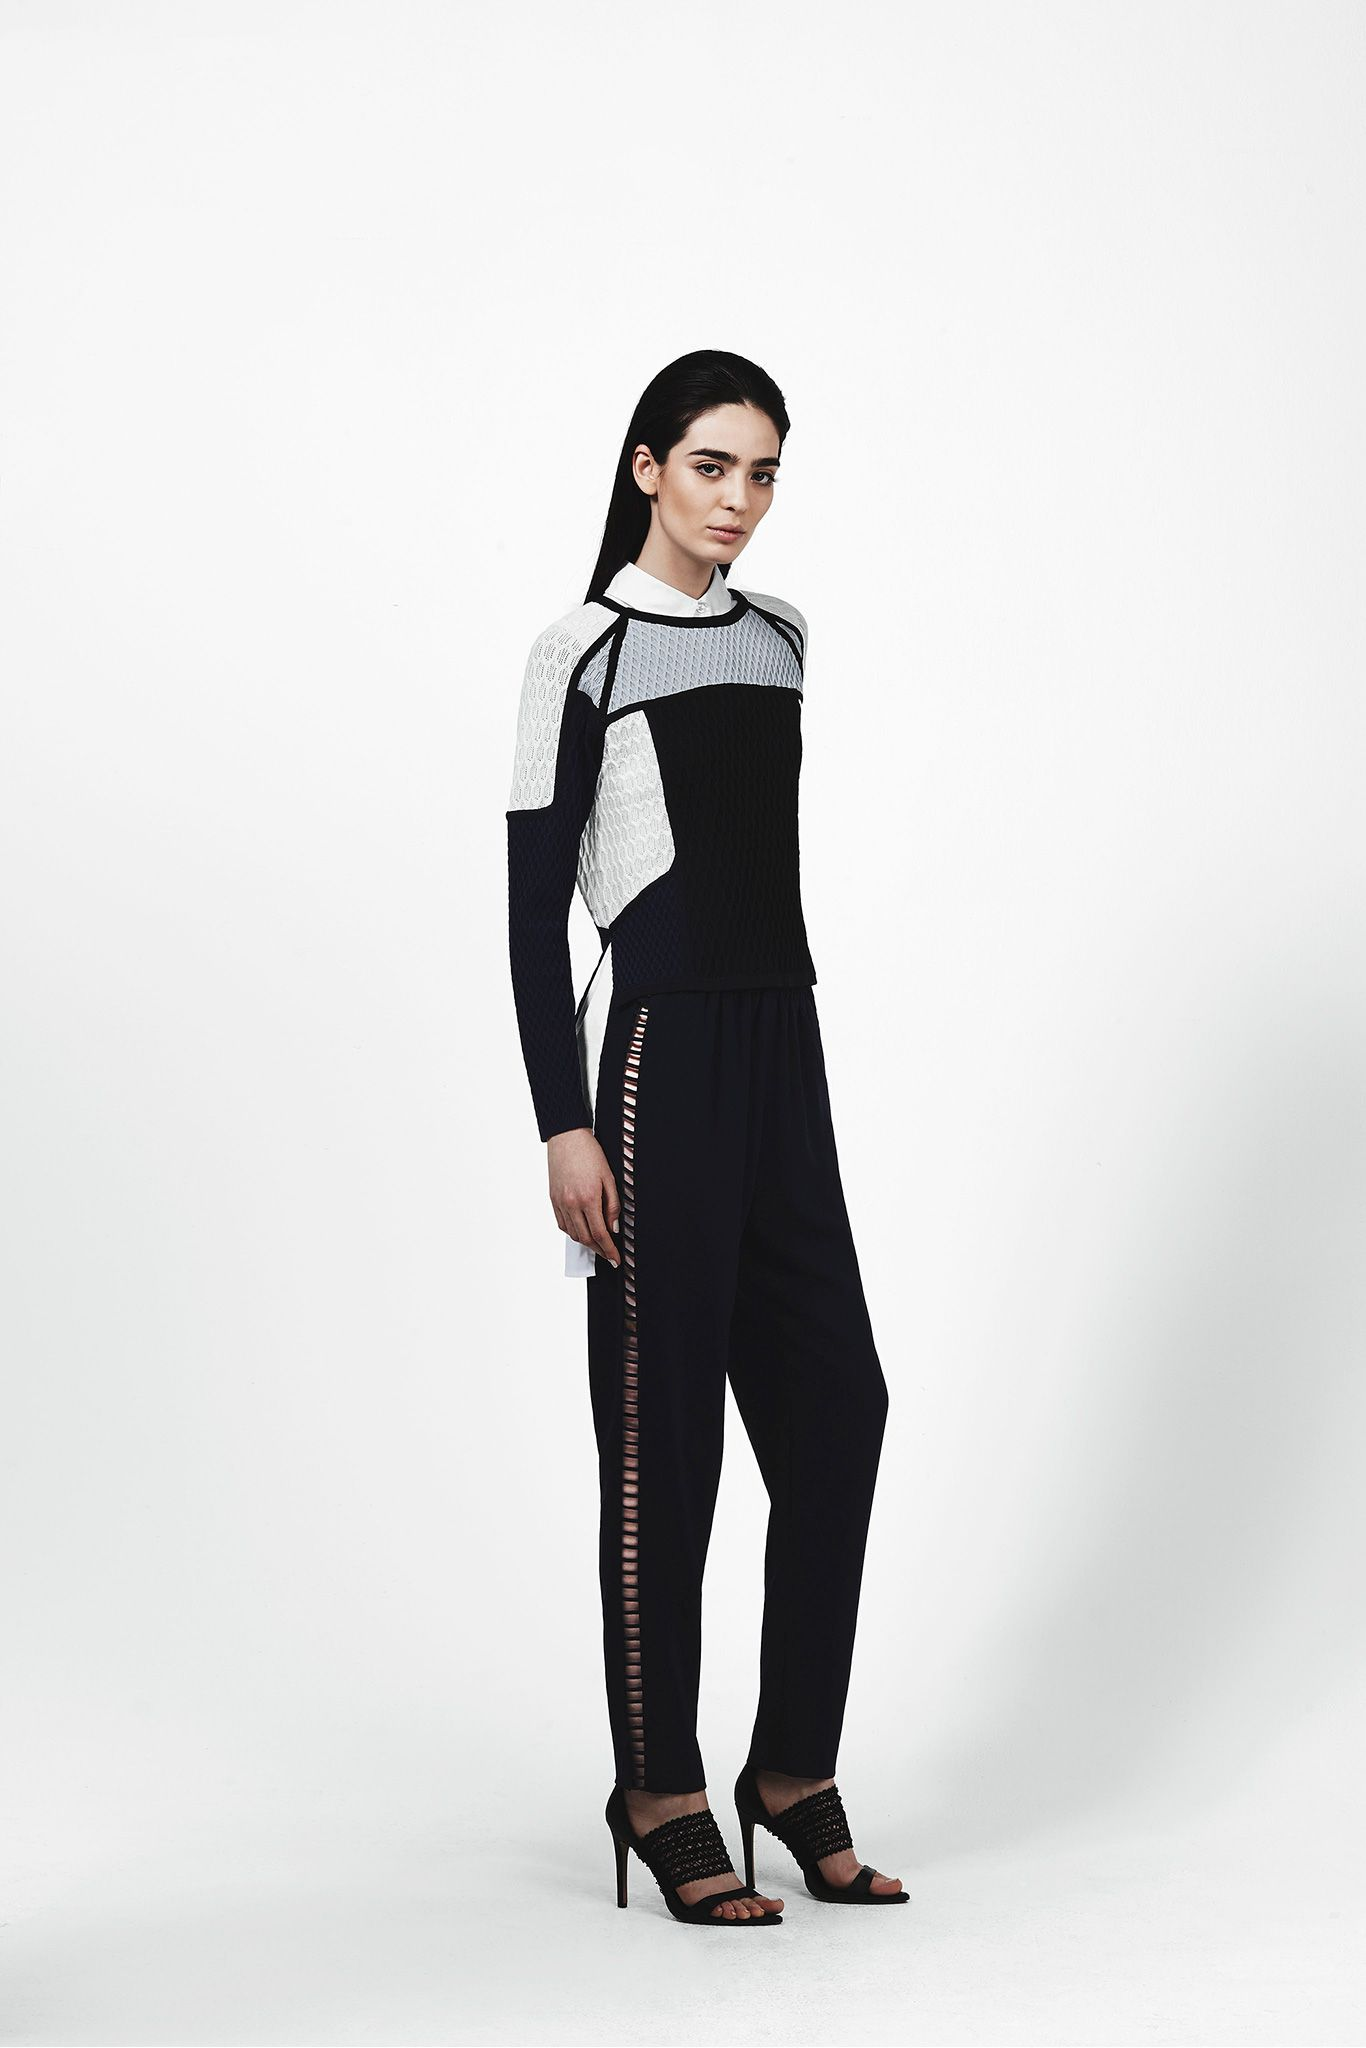 http://www.style.com/slideshows/fashion-shows/pre-fall-2015/jonathan-simkhai/collection/6